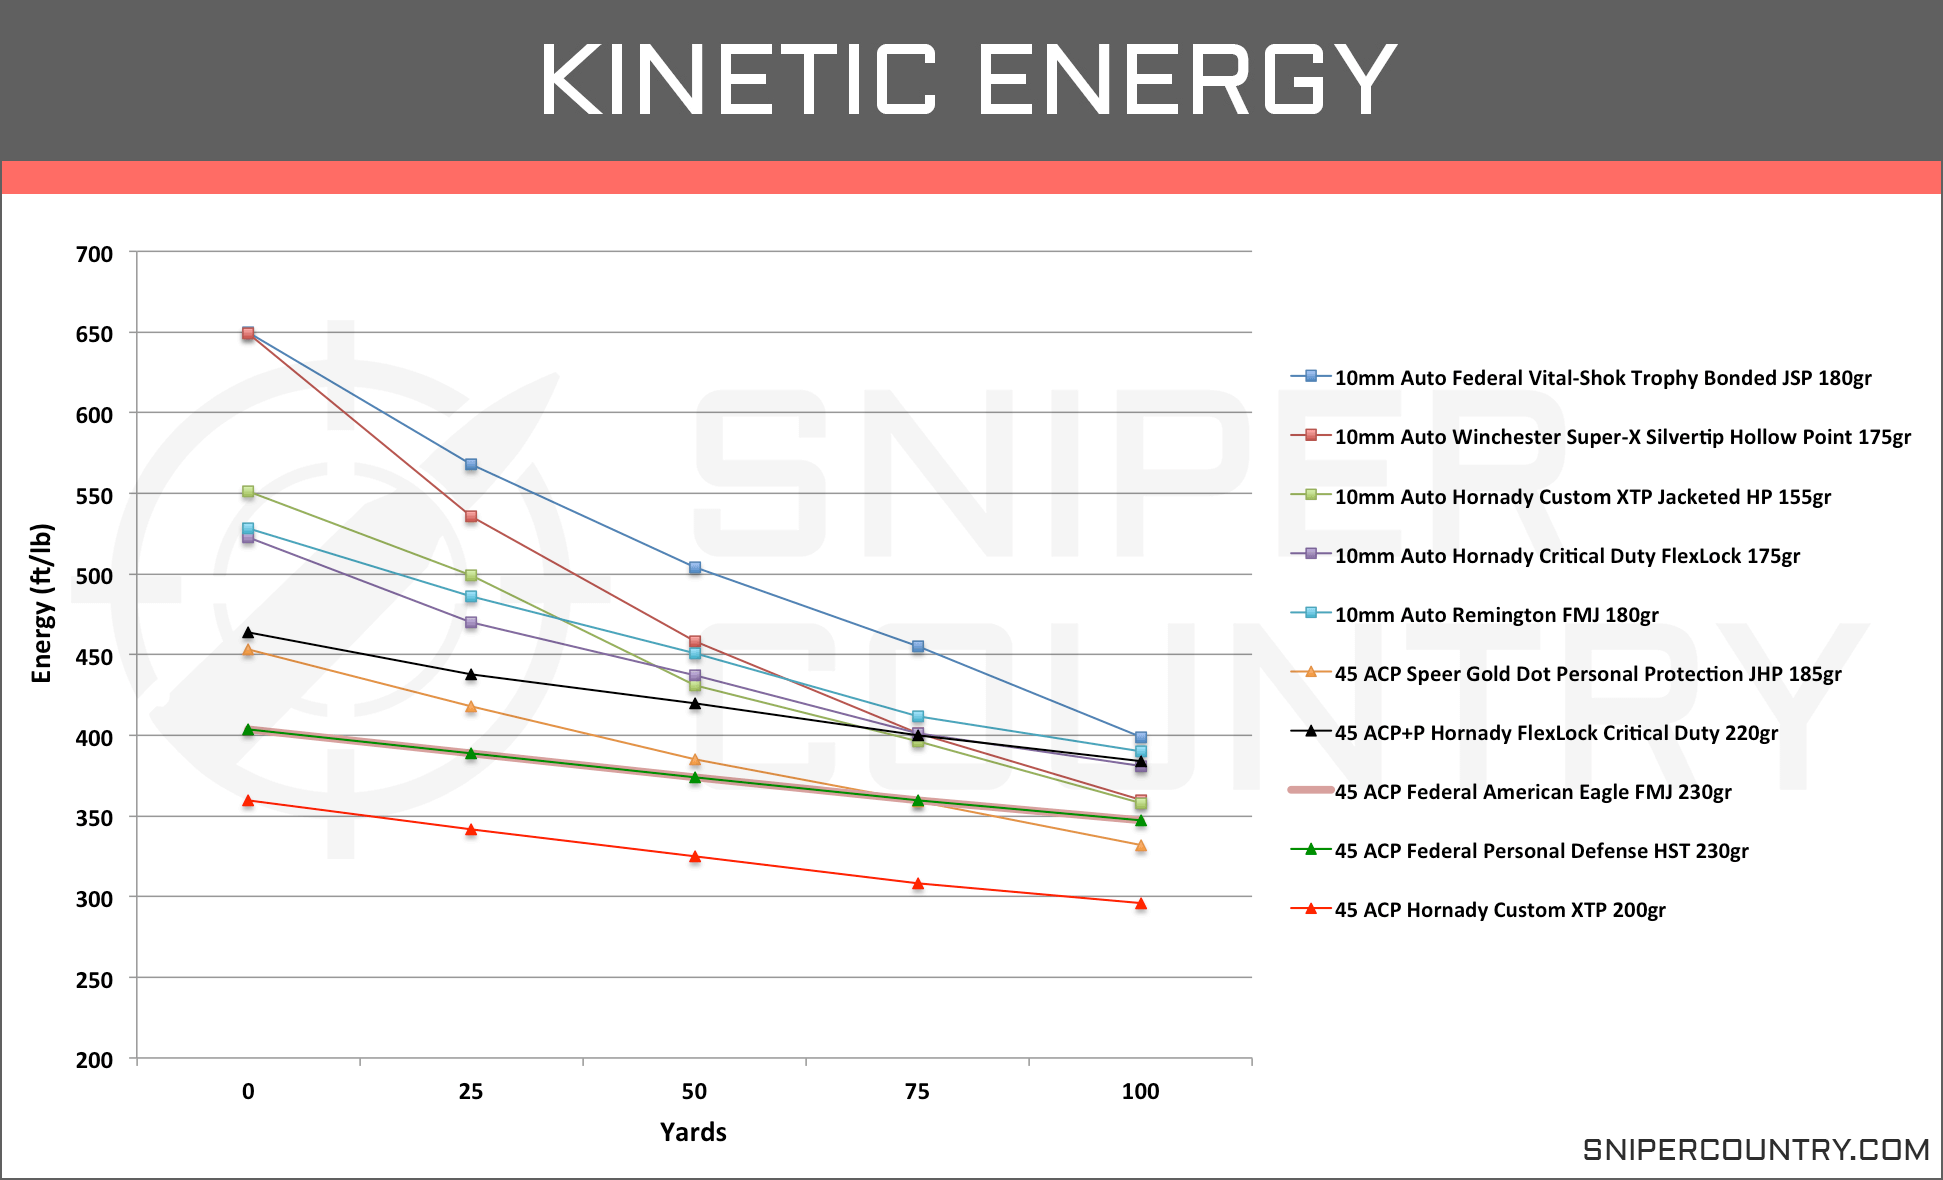 Kinetic Energy 10mm vs .45 ACP